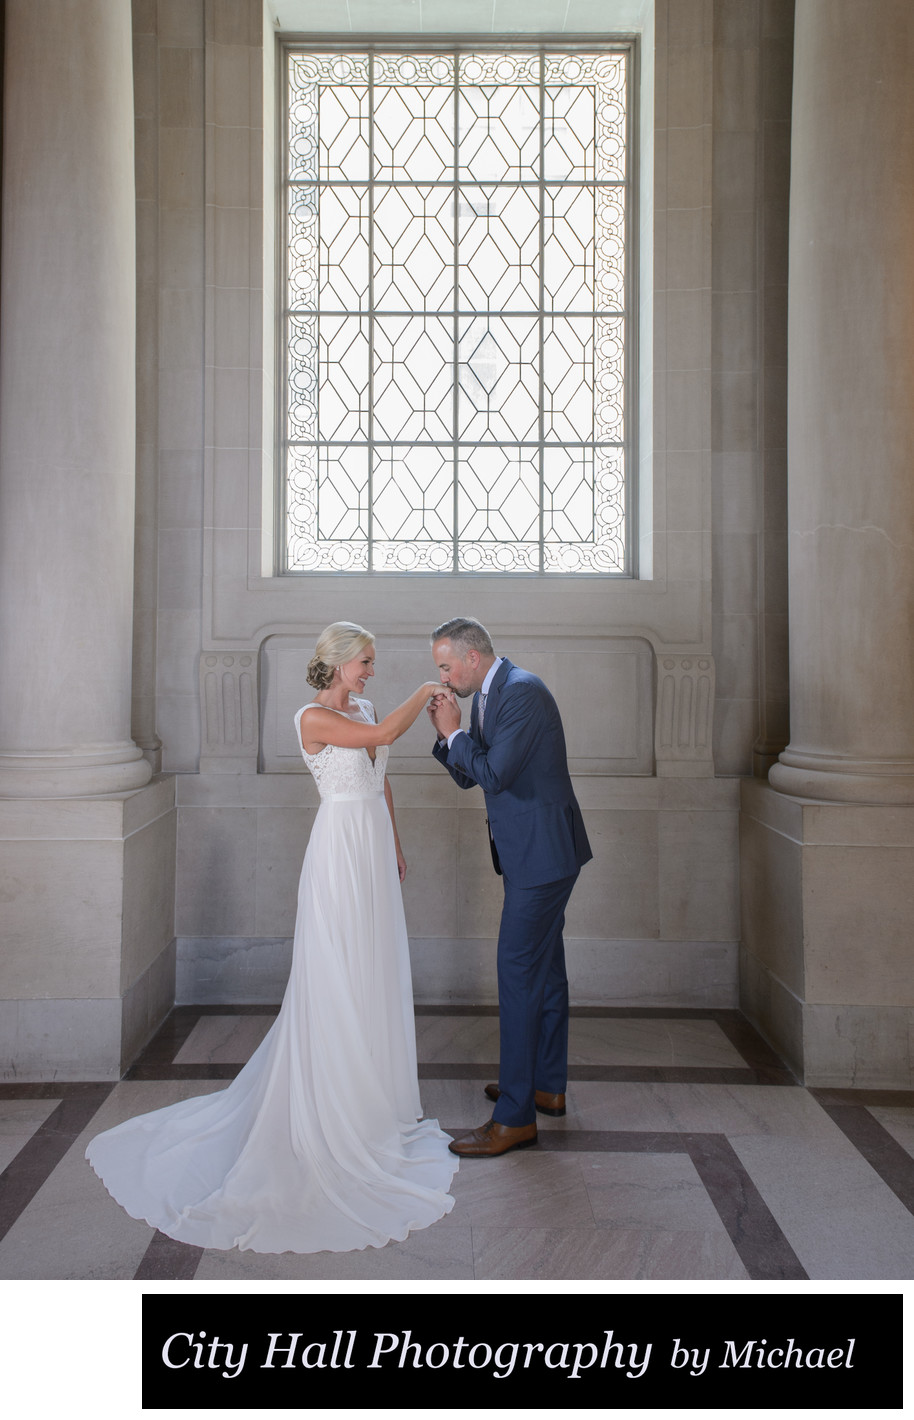 Hand kiss during wedding photography at city hall